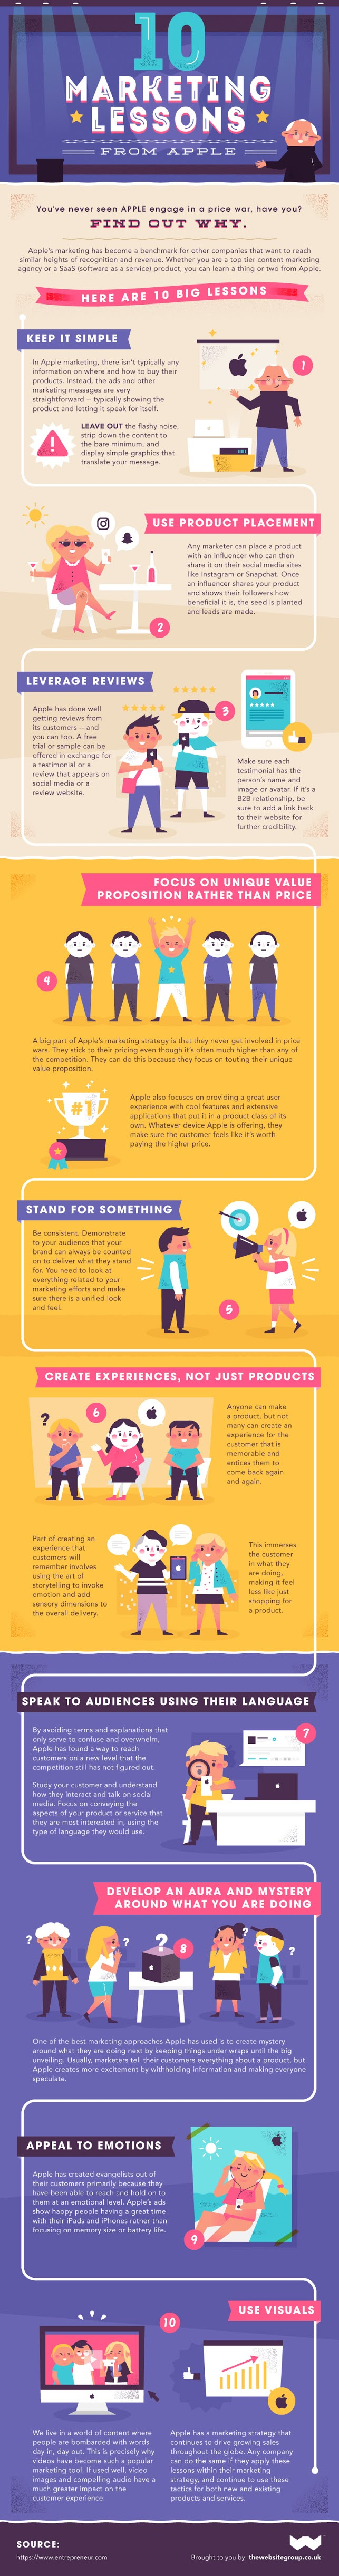 10 Marketing Lessons from Apple #infographic